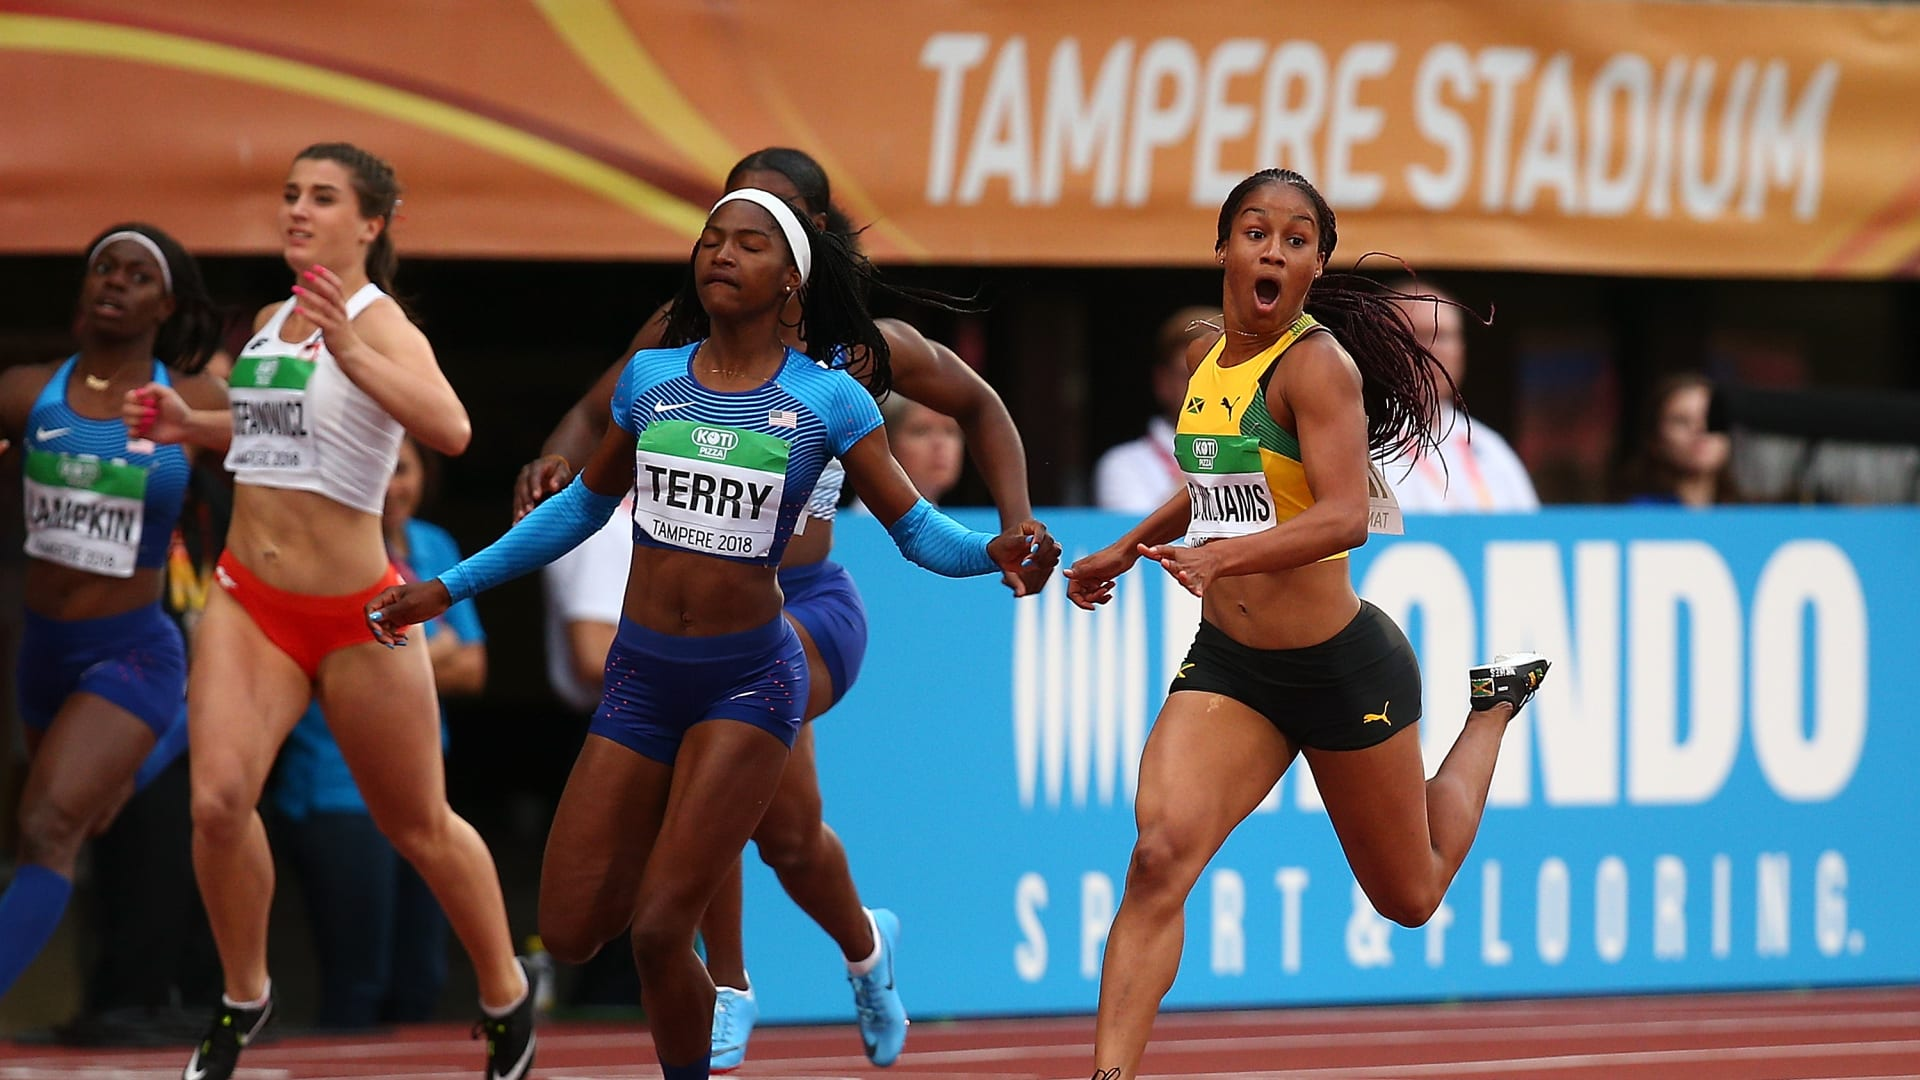 Briana Williams: the Jamaican sprinter looking to be as 'great as